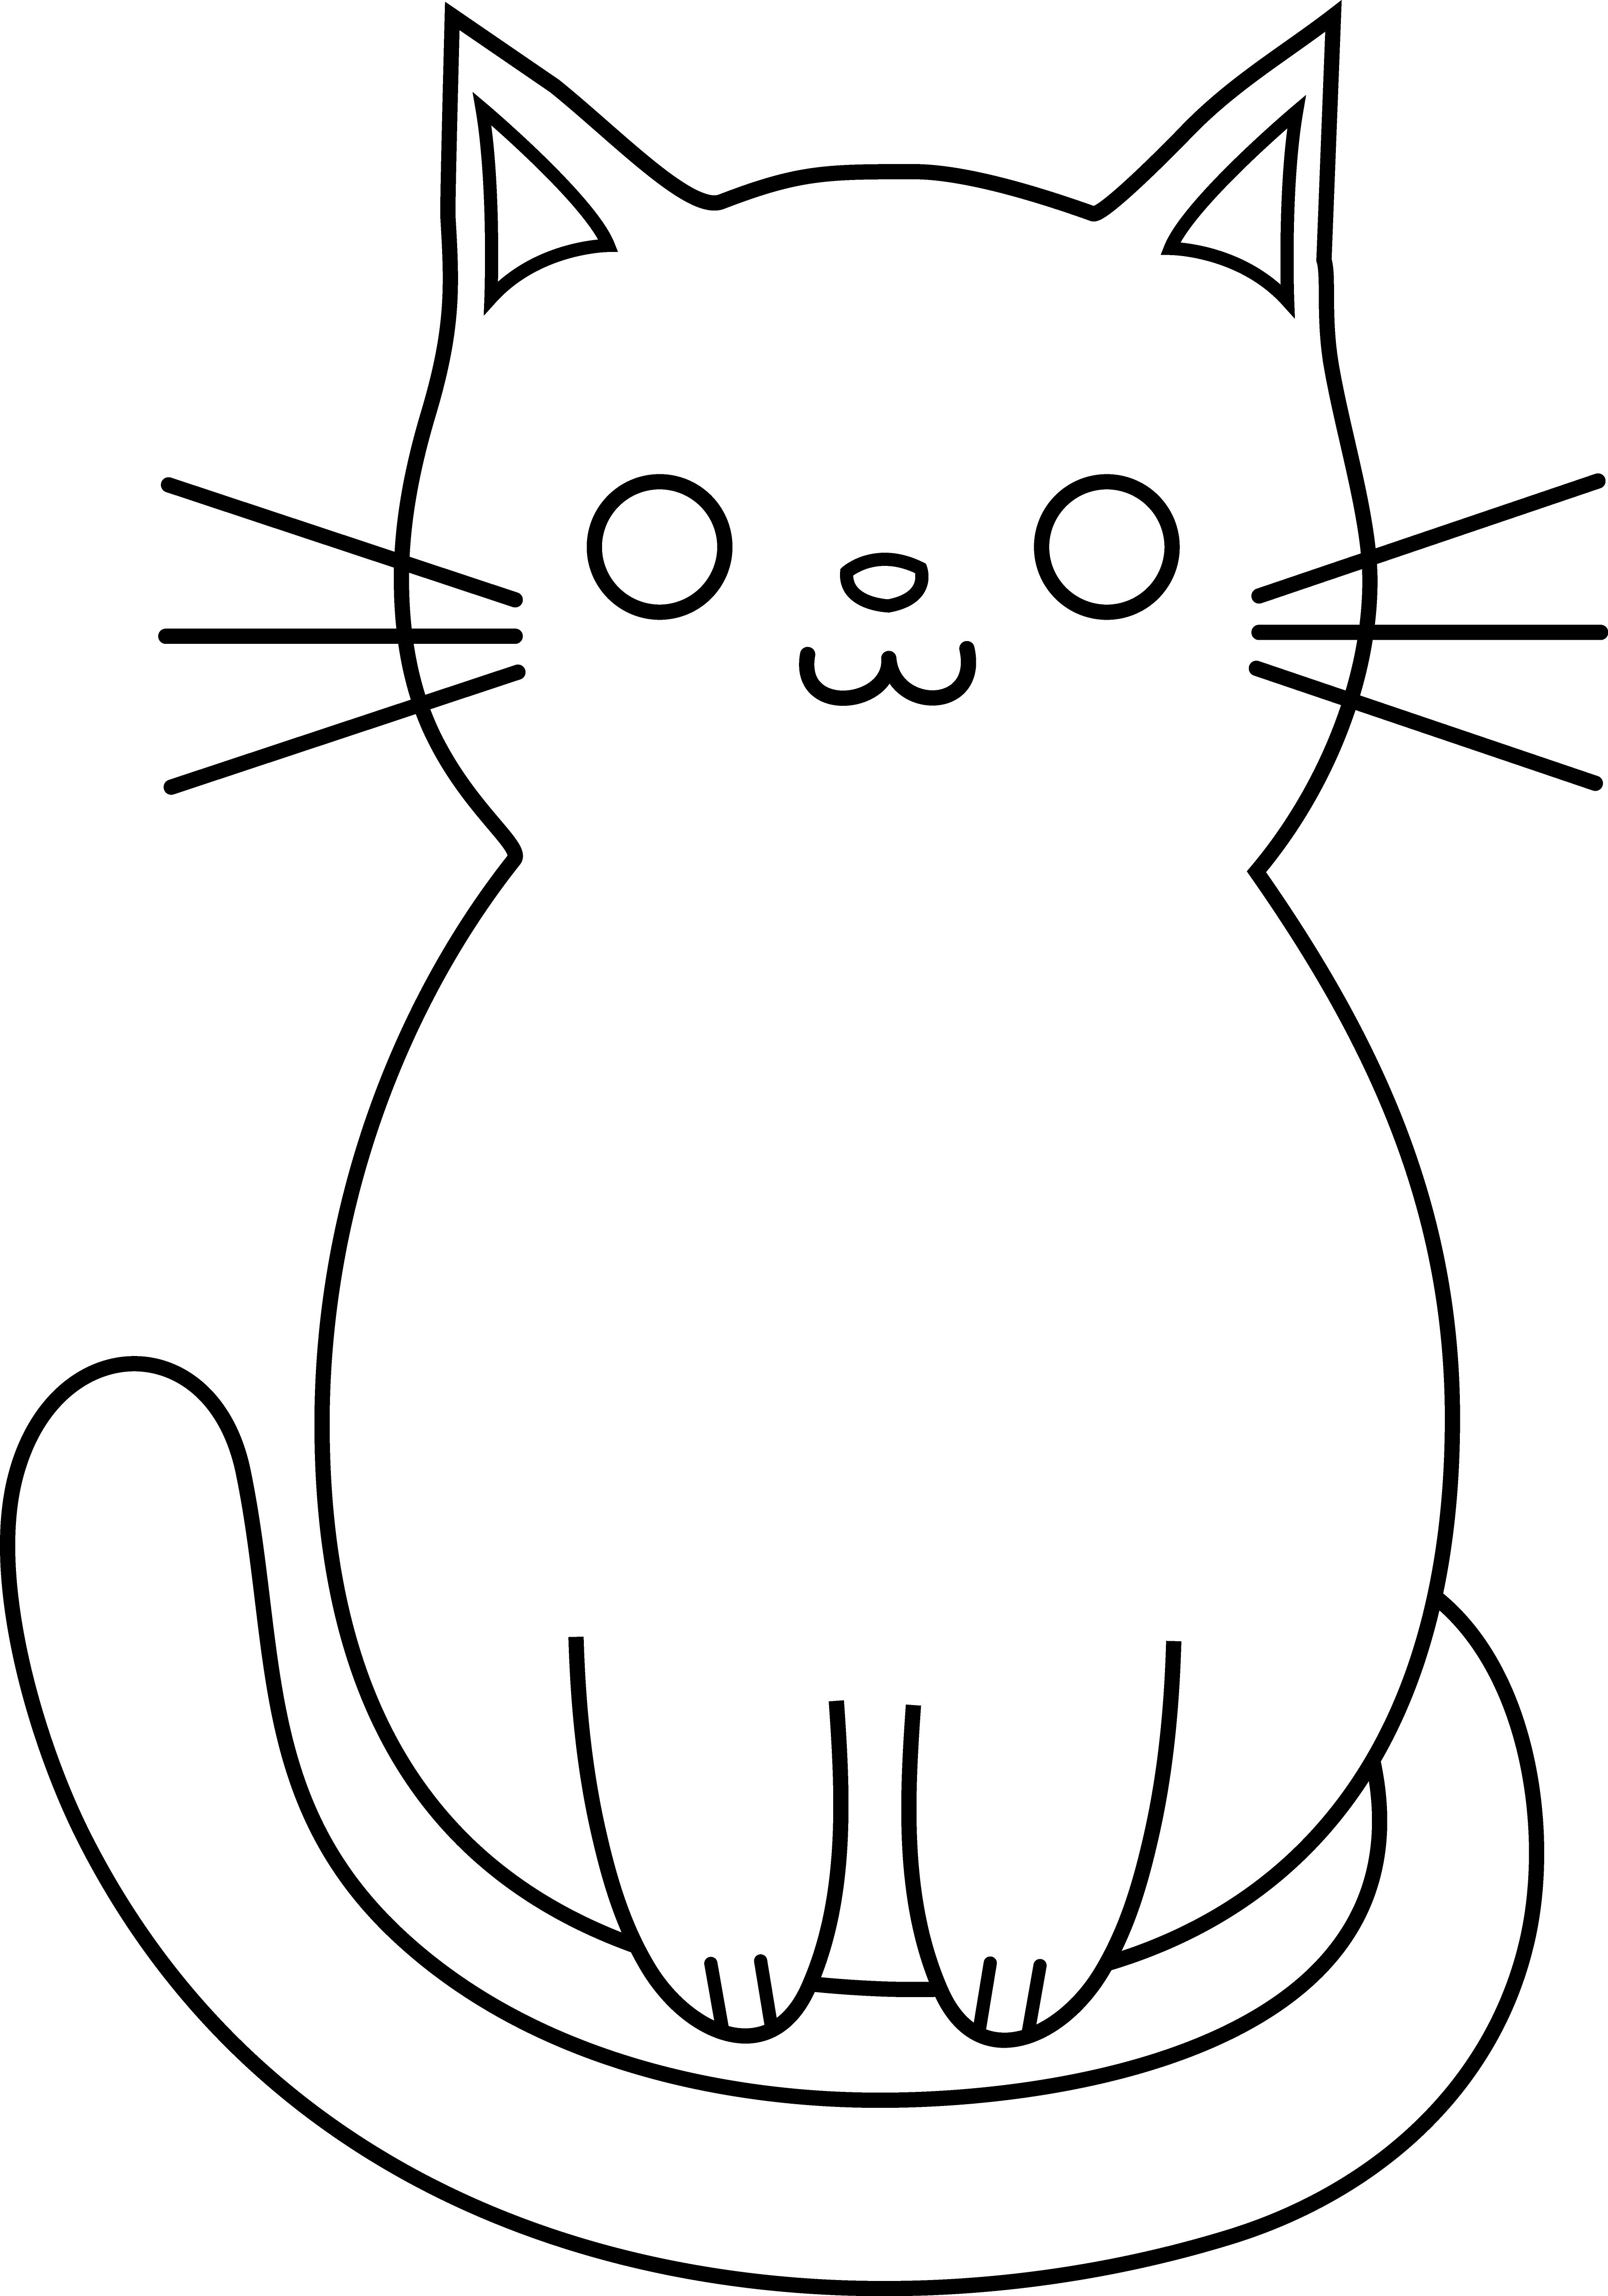 Cat drawing pic simple. Kitty clipart easy